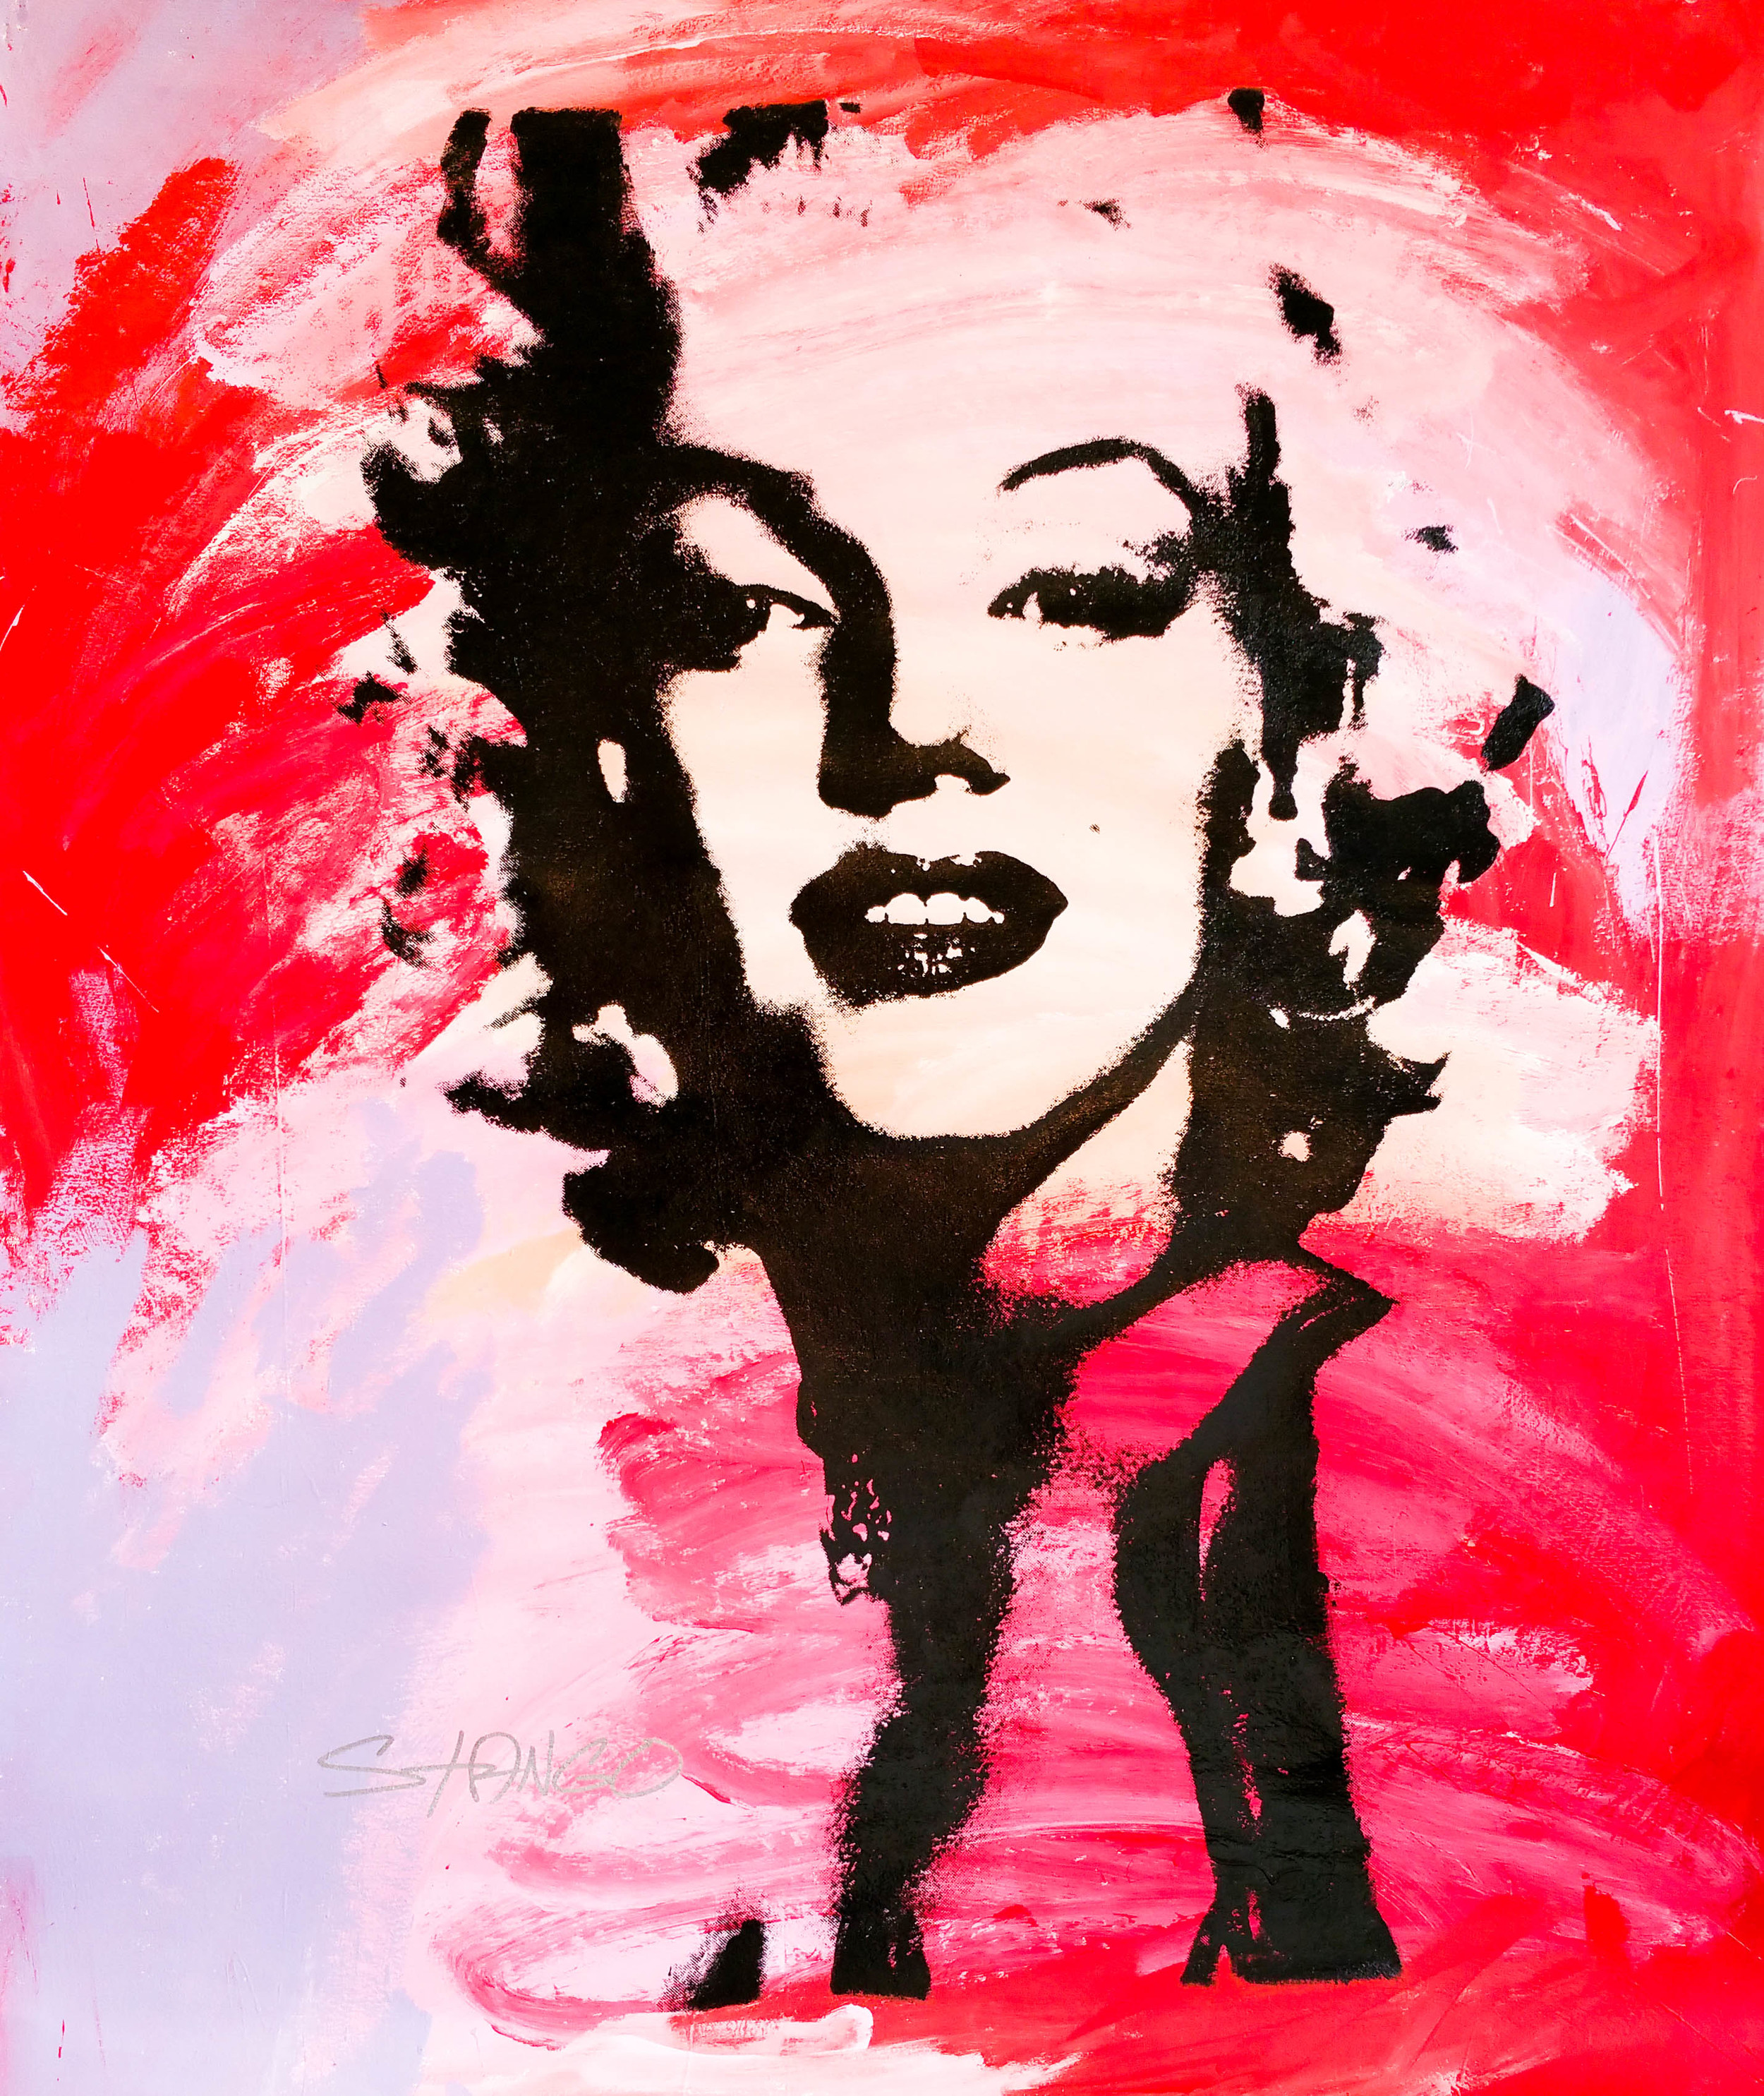 Marilyn Monroe [Cotton Candy Dream] • 48 X 40 • Acrylic on Canvas